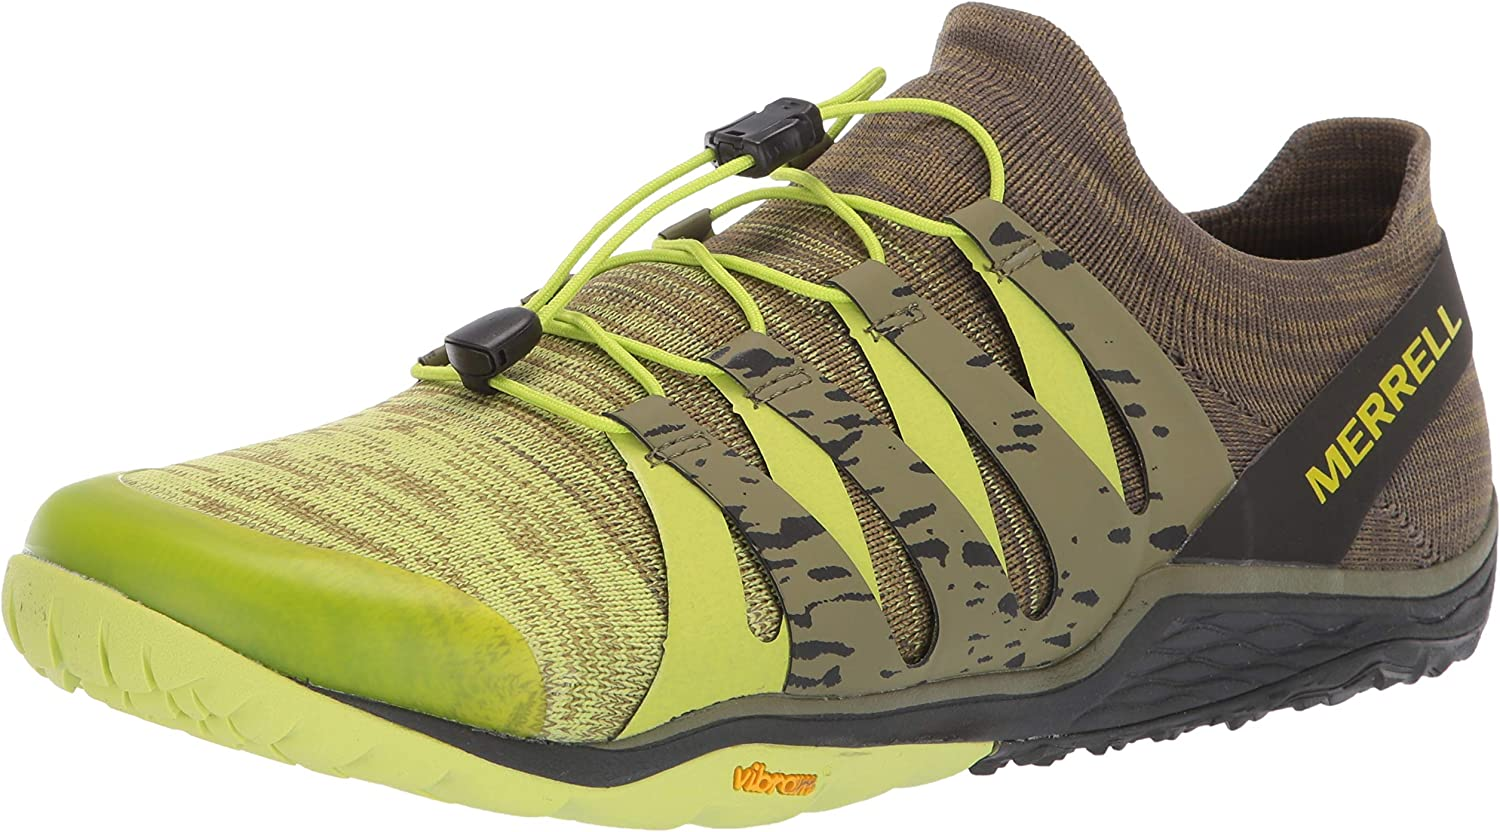 Merrell Trail Glove 5 3D, Zapatillas Deportivas para Interior para Hombre, Multicolor (Lime Punch), 44 EU: Amazon.es: Zapatos y complementos